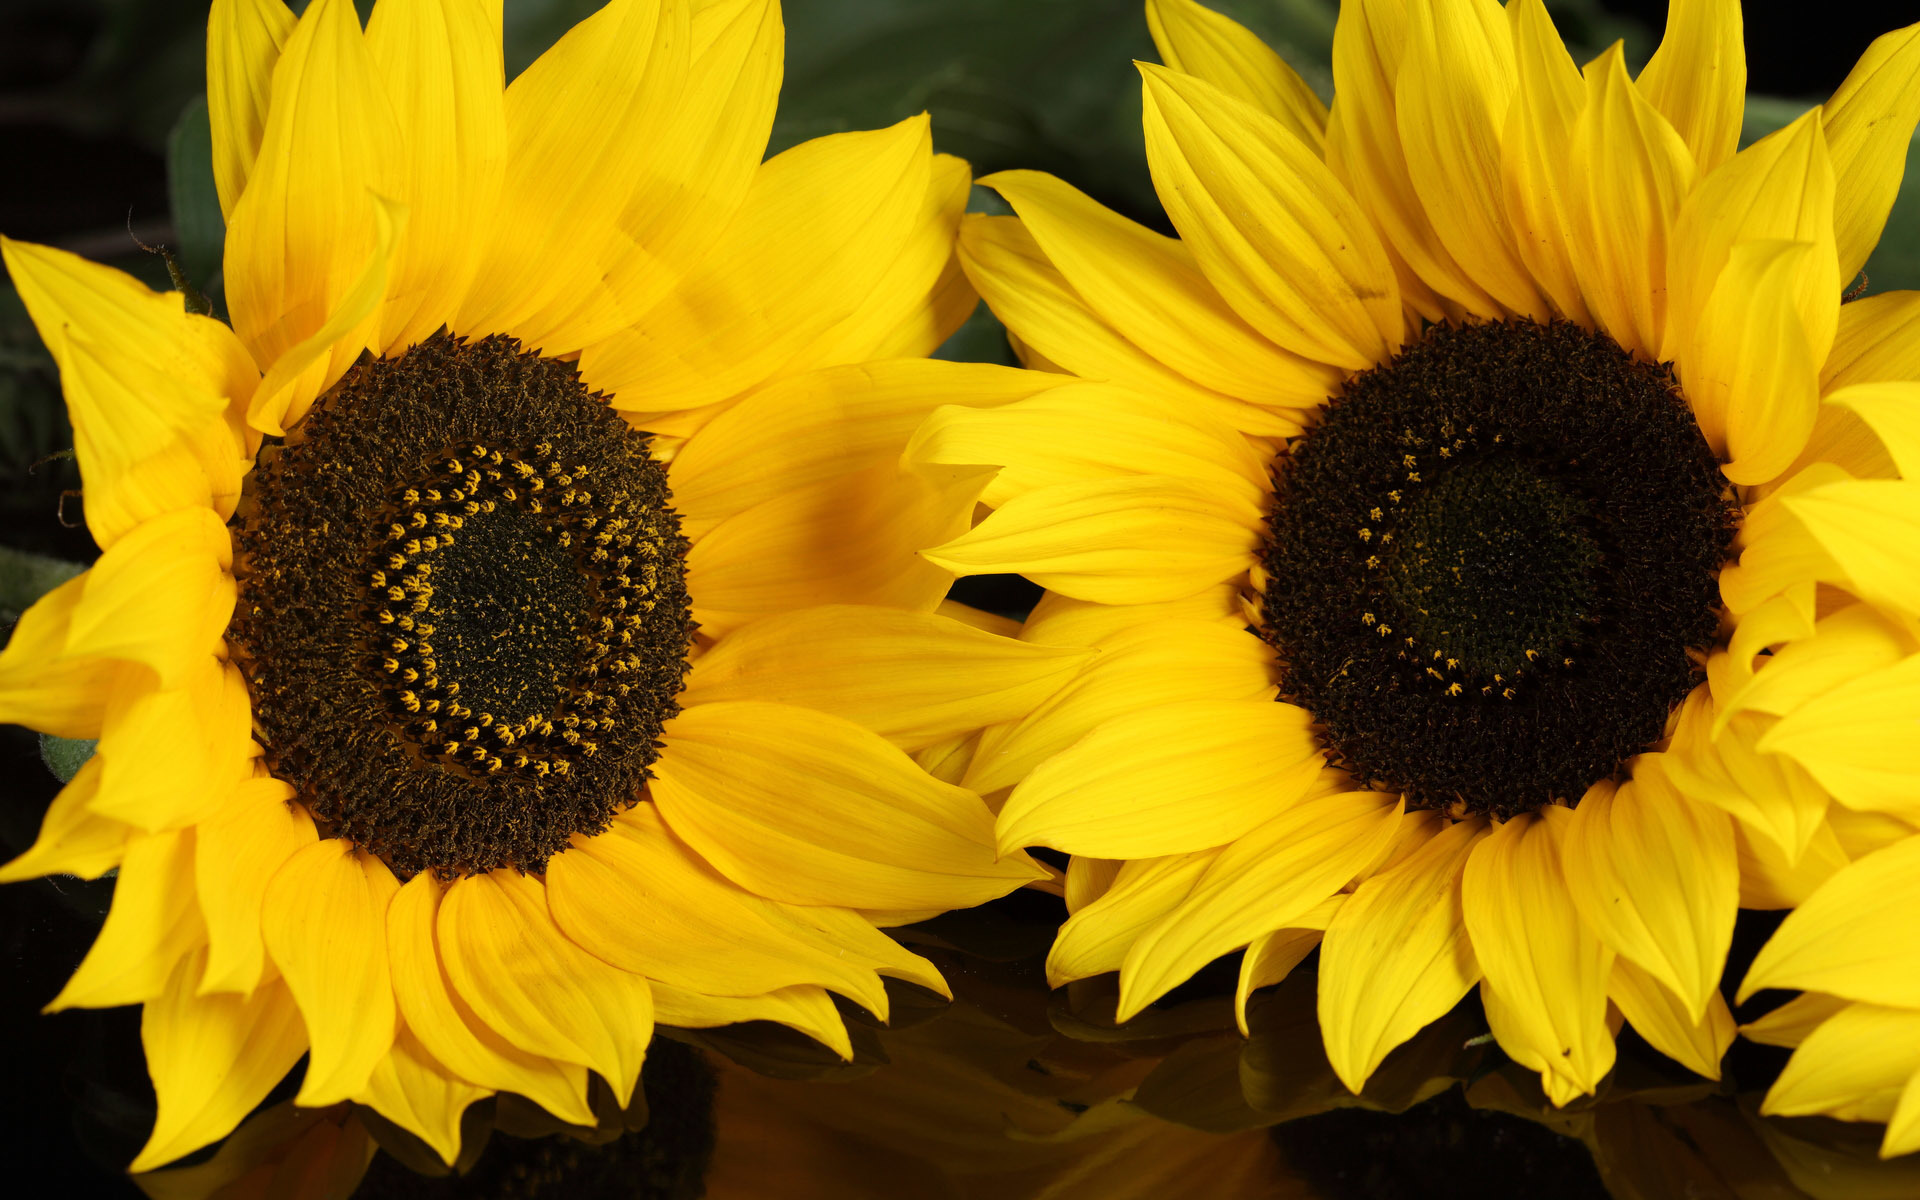 Sunflowers flower Flowers HD Wallpaper